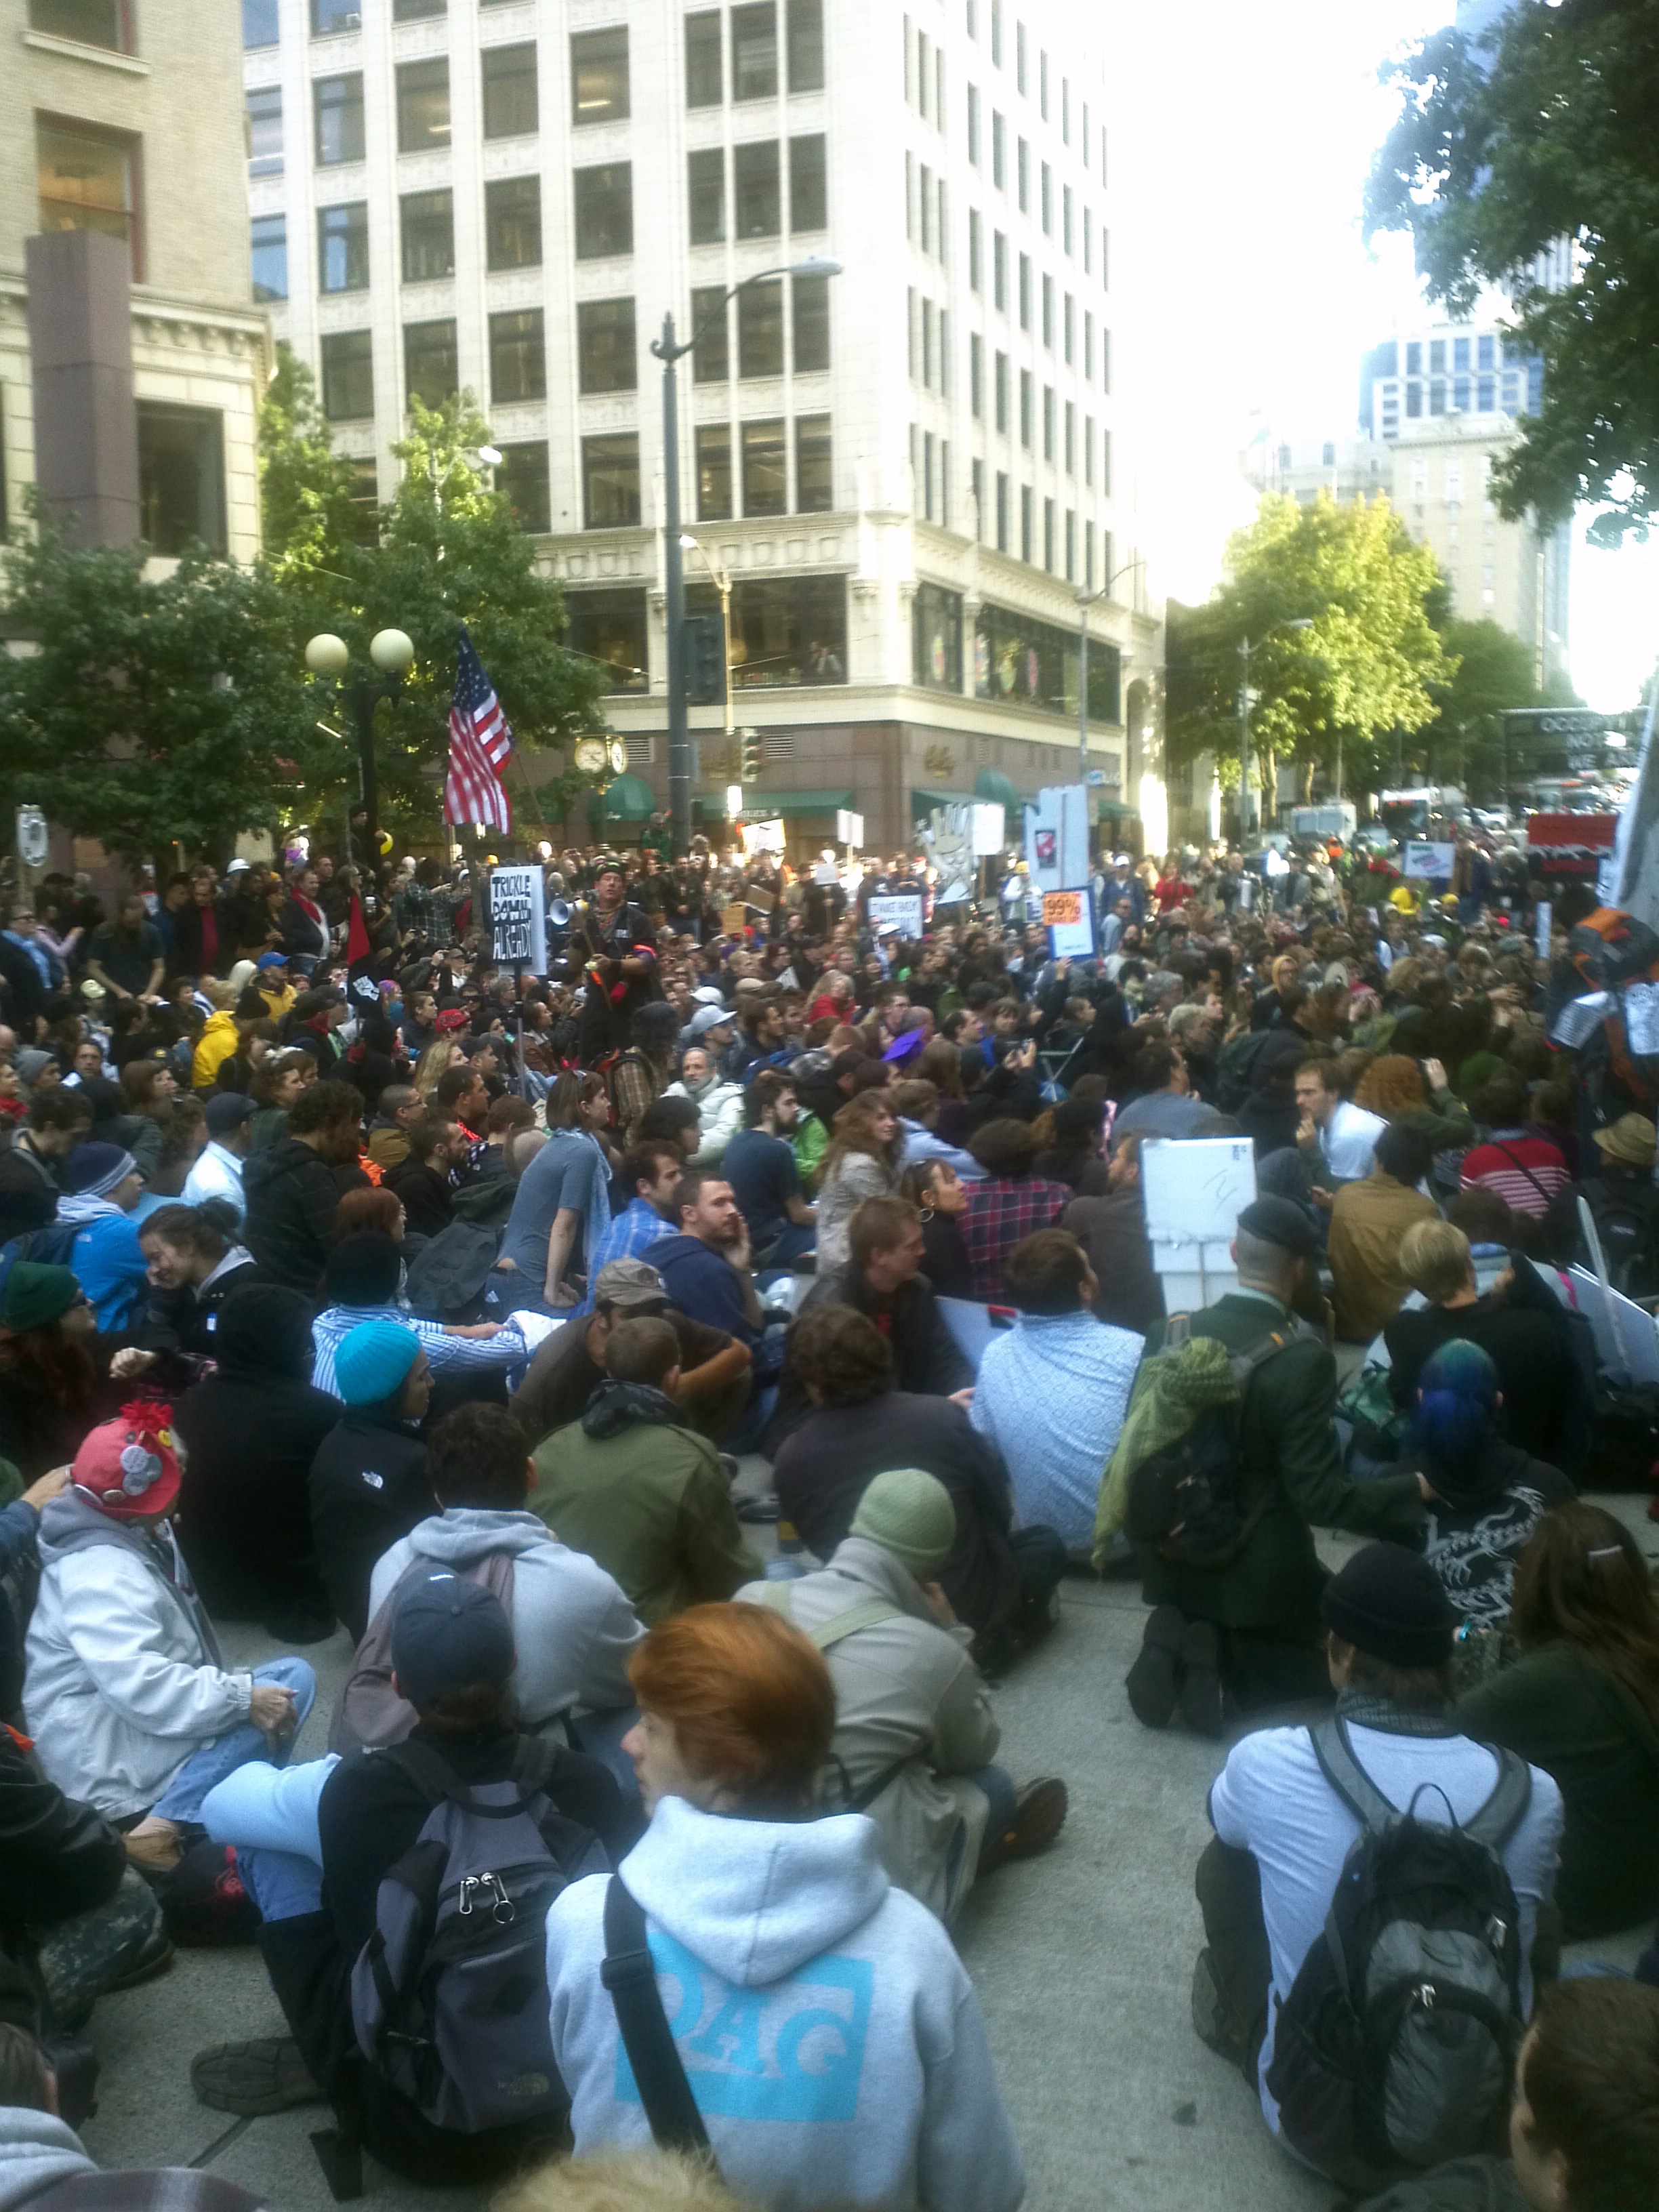 Massed demonstrations for Occupy Seattle/Occupy Earth/Occupy Everywhere/Occupy Love. Downtown Seattle, WA, Cascadia, Saturday 15 October 2016.